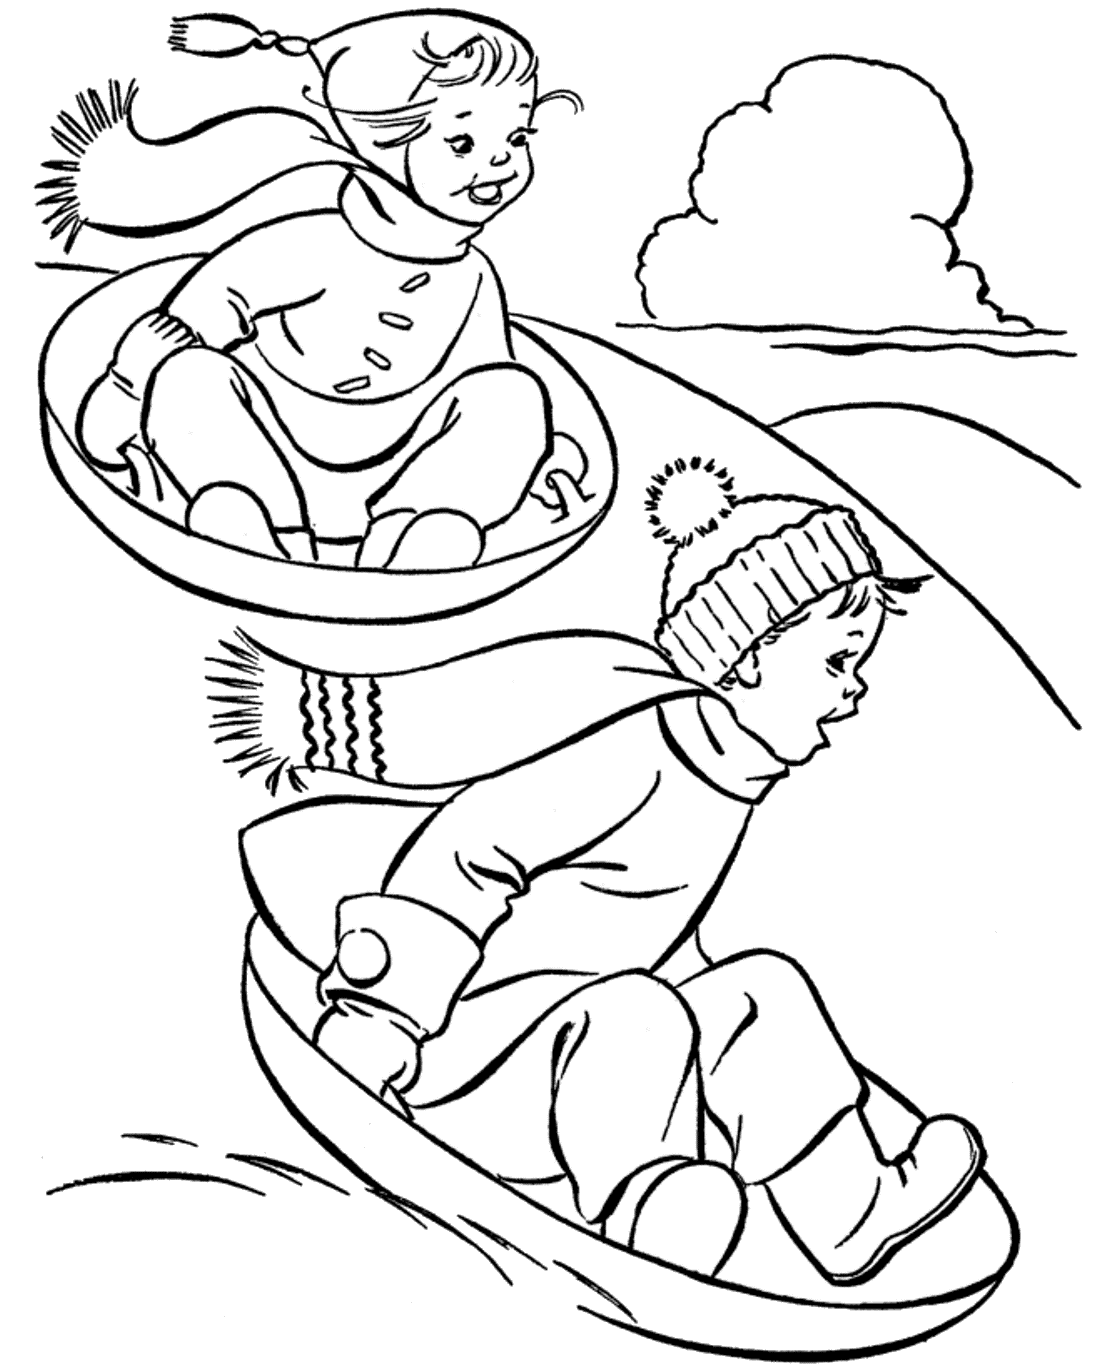 free printable sports coloring pages get this free sports coloring pages to print hfgyx coloring printable pages free sports